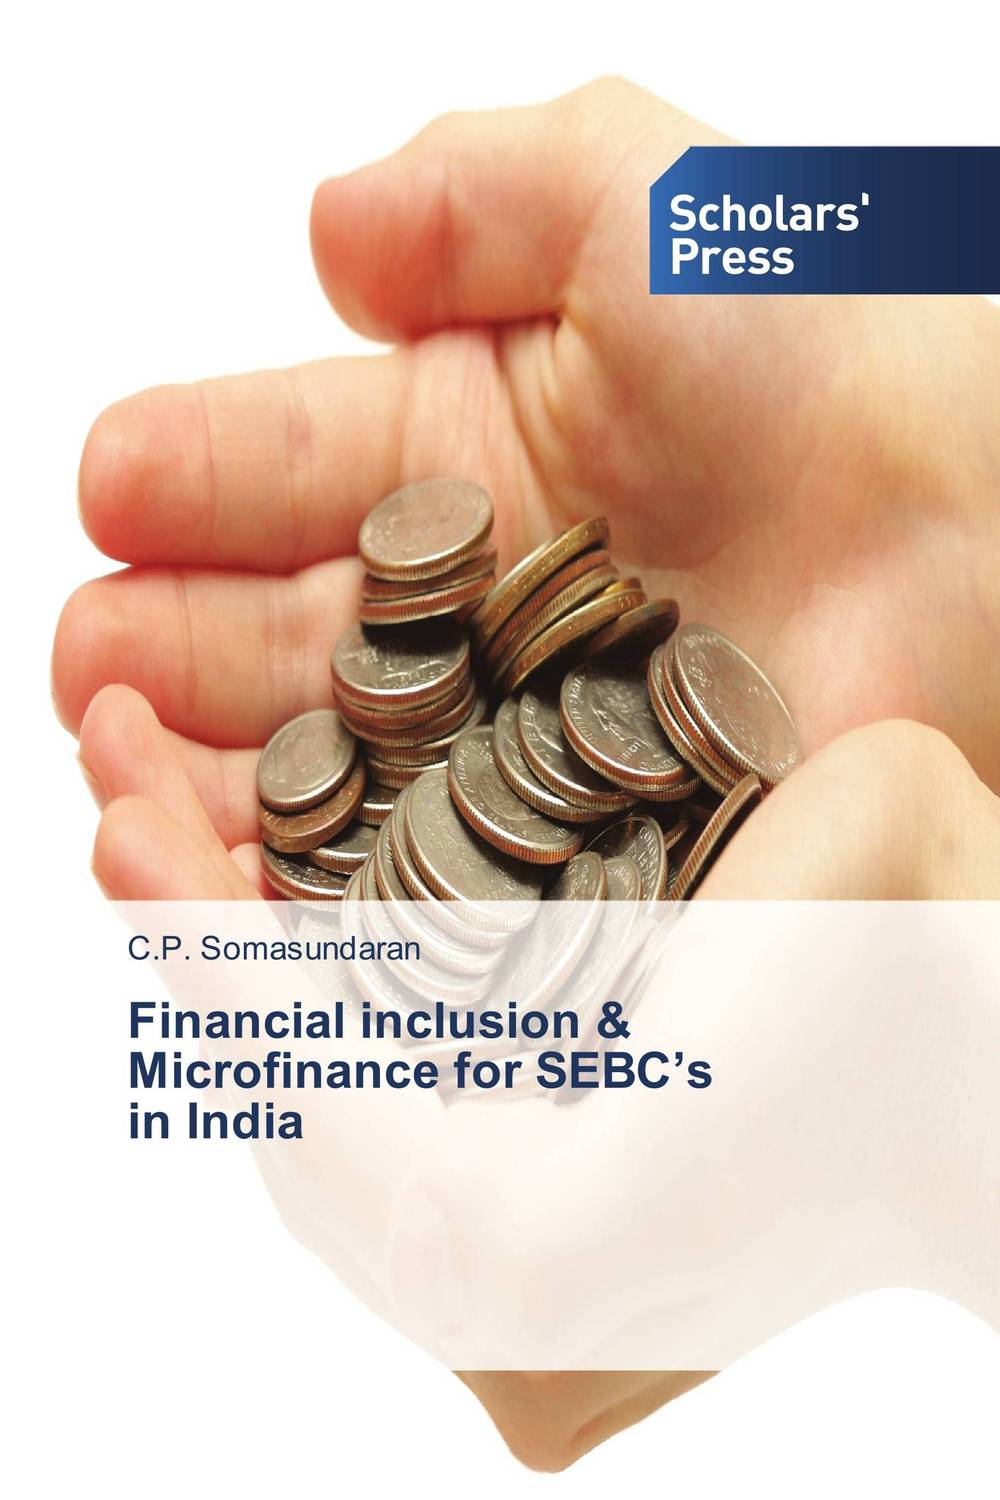 Financial inclusion & Microfinance for SEBC's   in India jaynal ud din ahmed and mohd abdul rashid institutional finance for micro and small entreprises in india